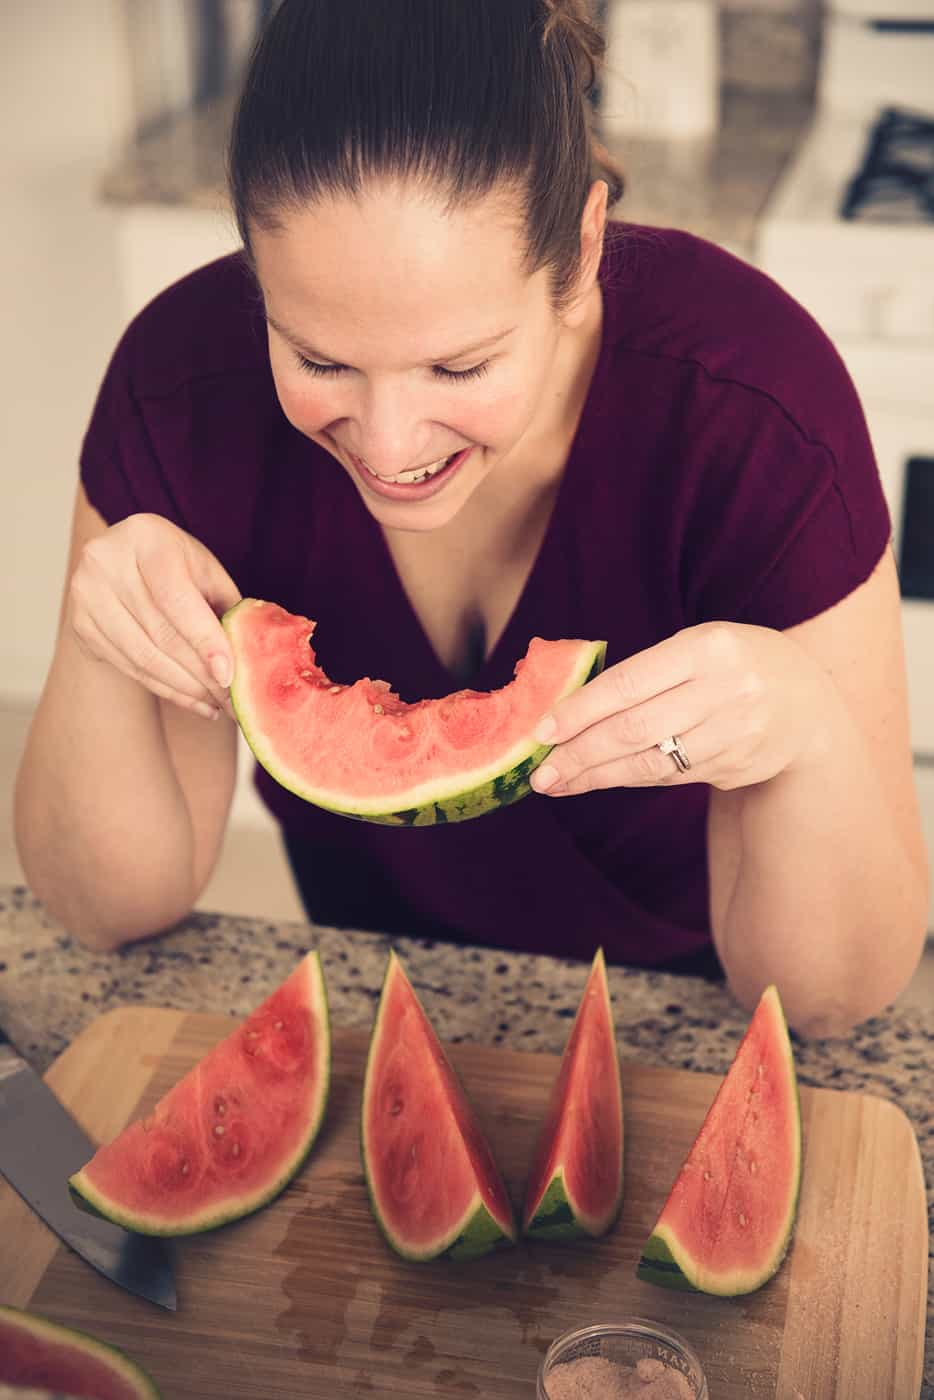 A woman eating a slice of watermelon at the kitchen counter